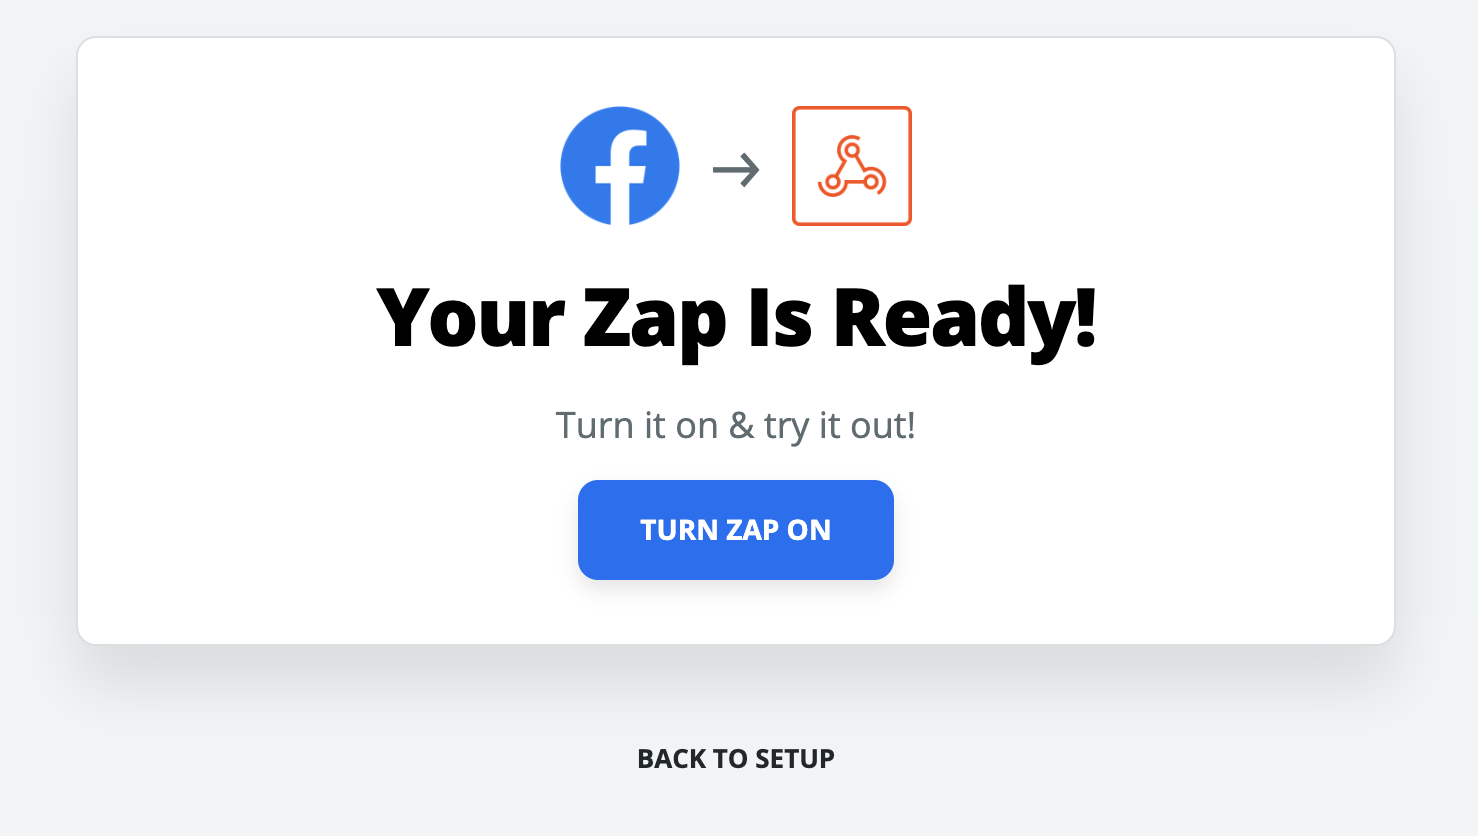 After successful tests, turn your Zap on when you're ready!